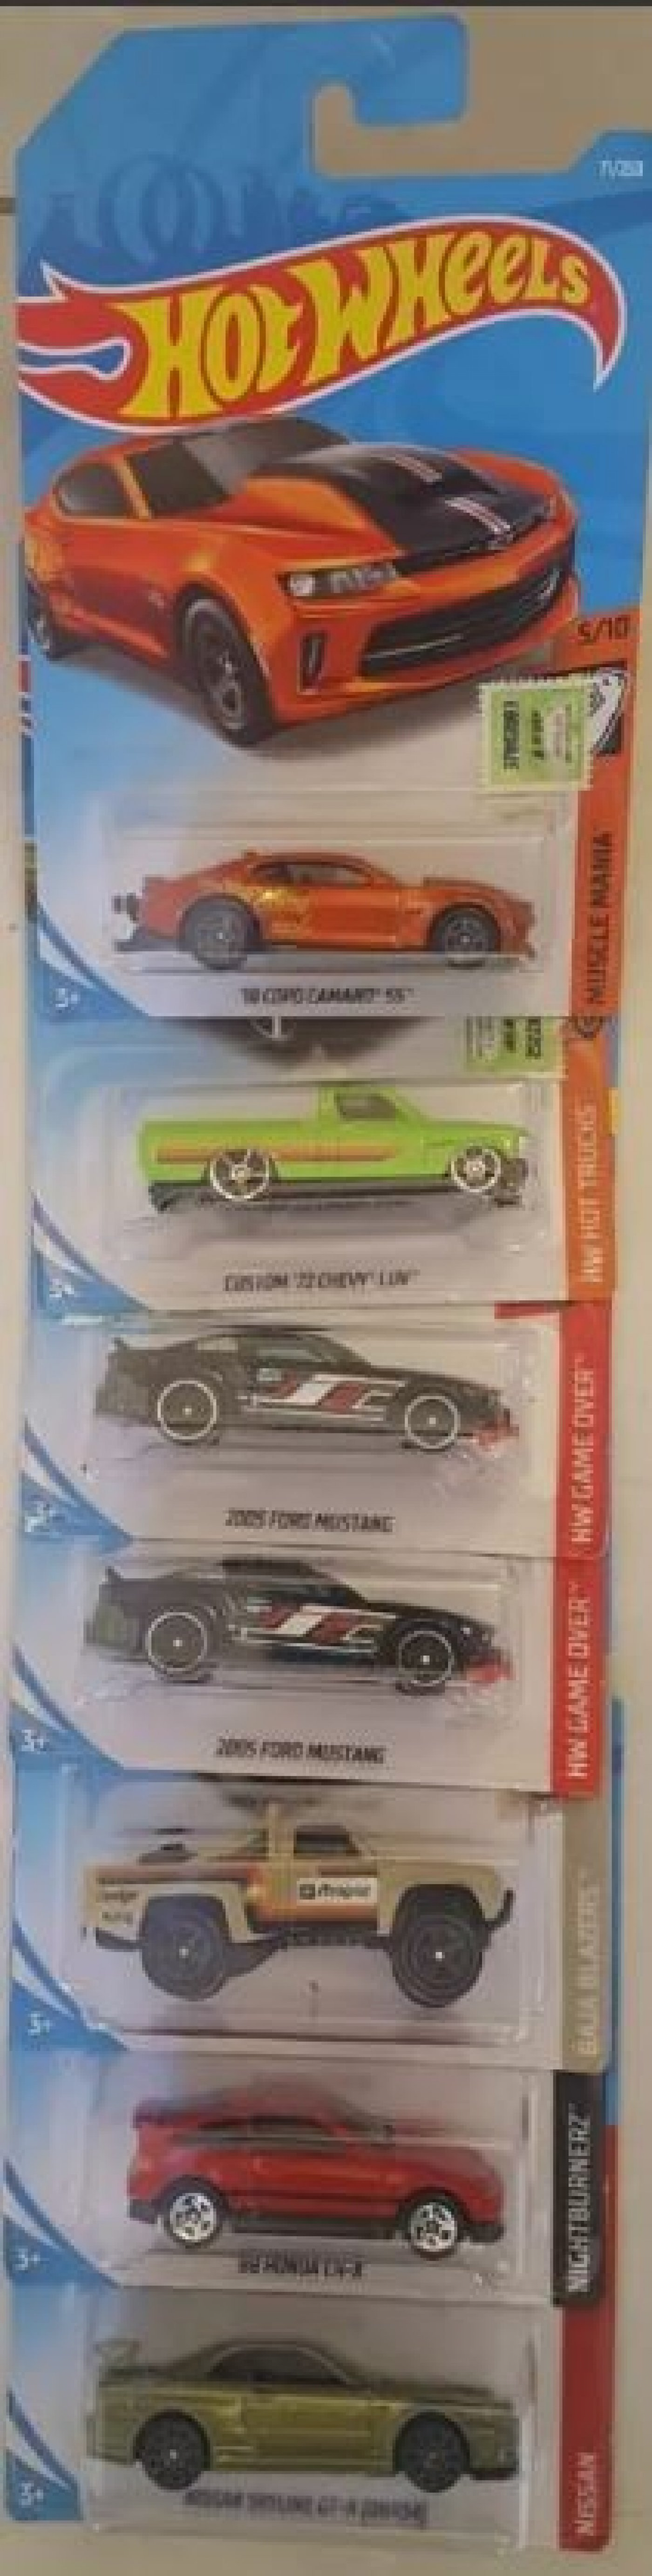 Hot Wheels Autitos X Unidad Original Mattel 2019